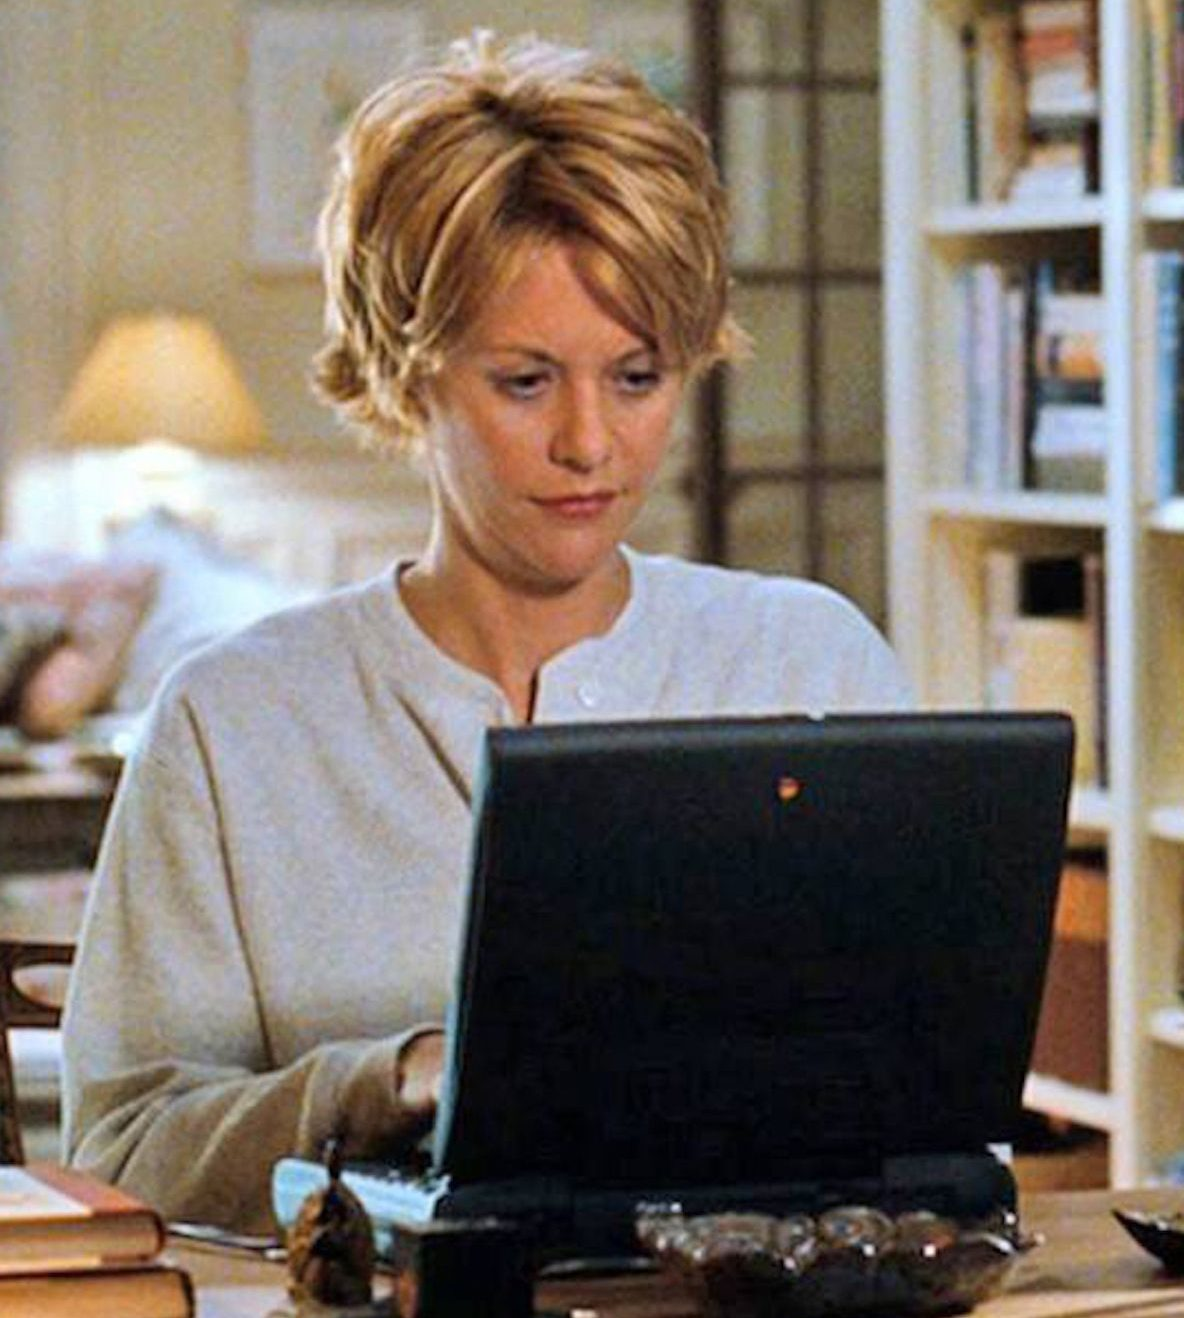 Computer Youve Got Mail Nora Ephron e1582019792478 20 Movies That Are Basically Glorified Product Placement